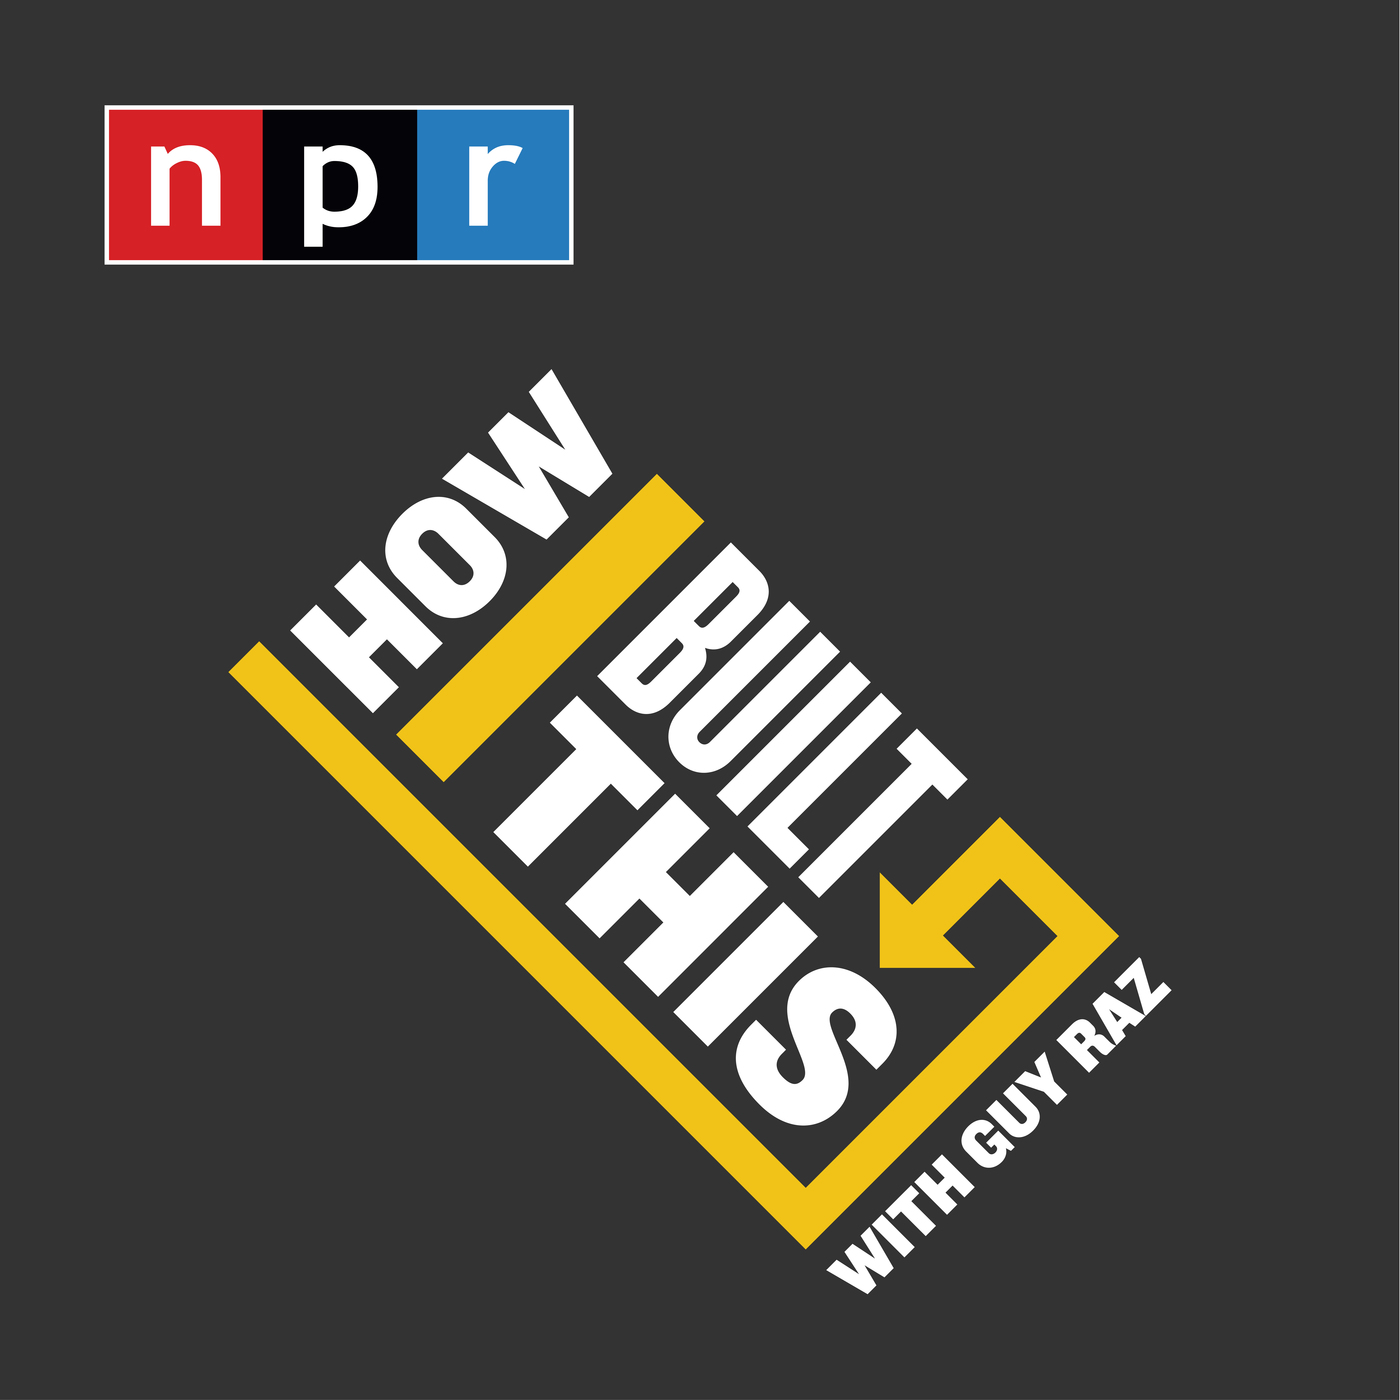 JasmineGurley.com-Podcasts-How I Built This by NPR.jpg